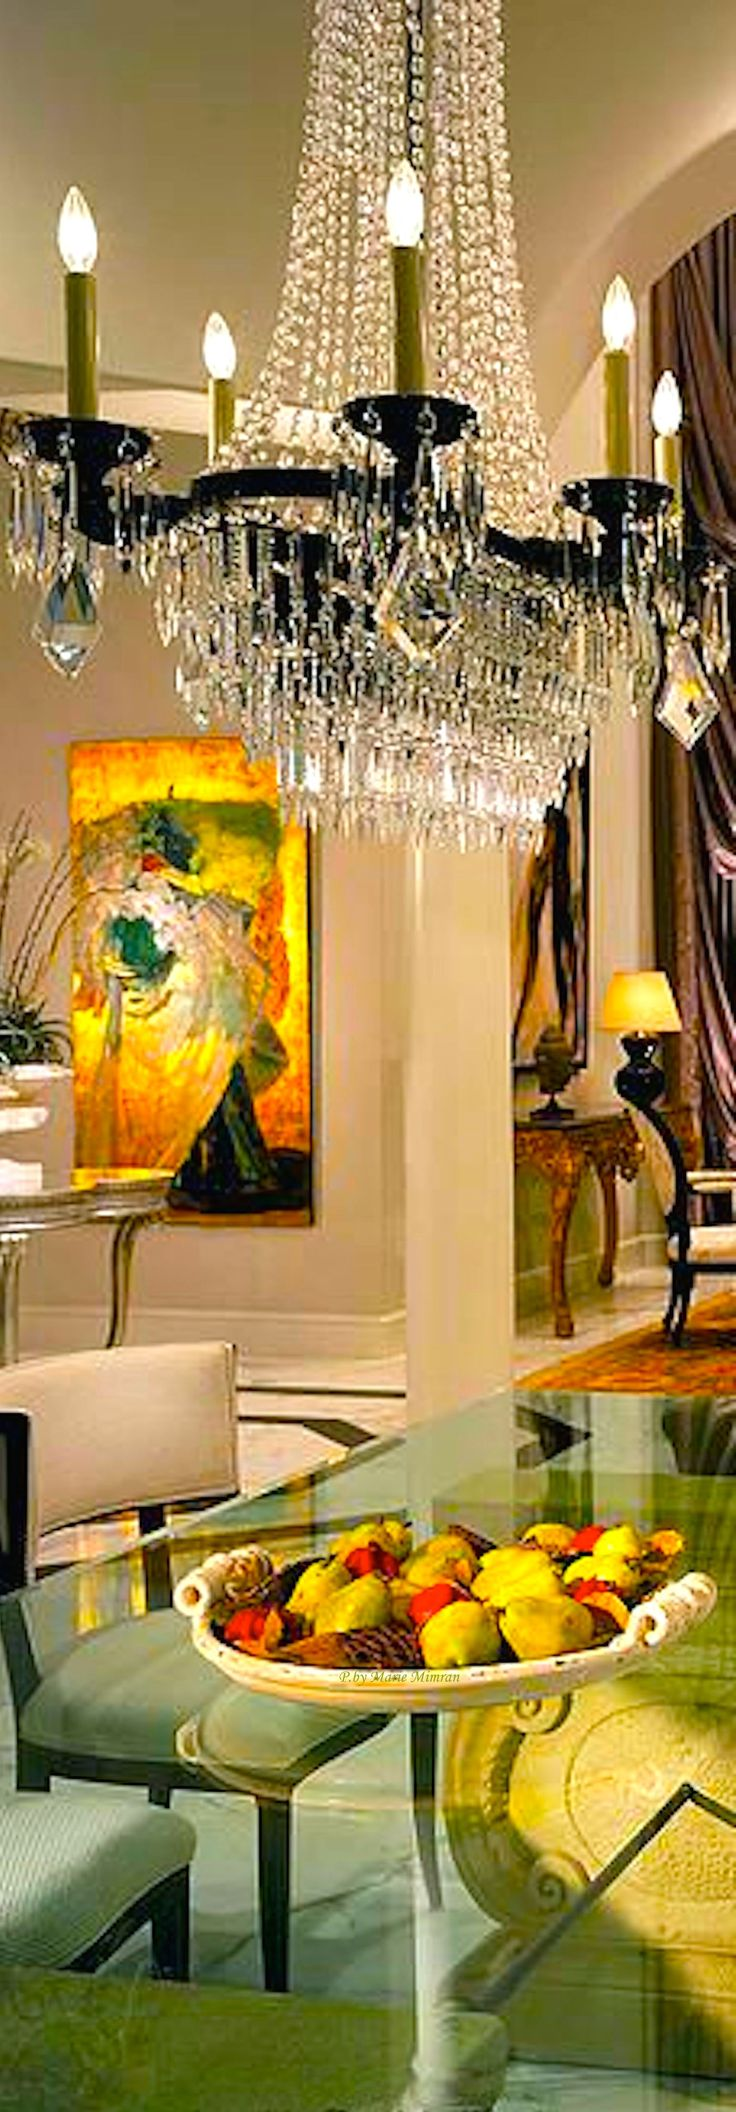 best chandelicious images on pinterest chandeliers dinner